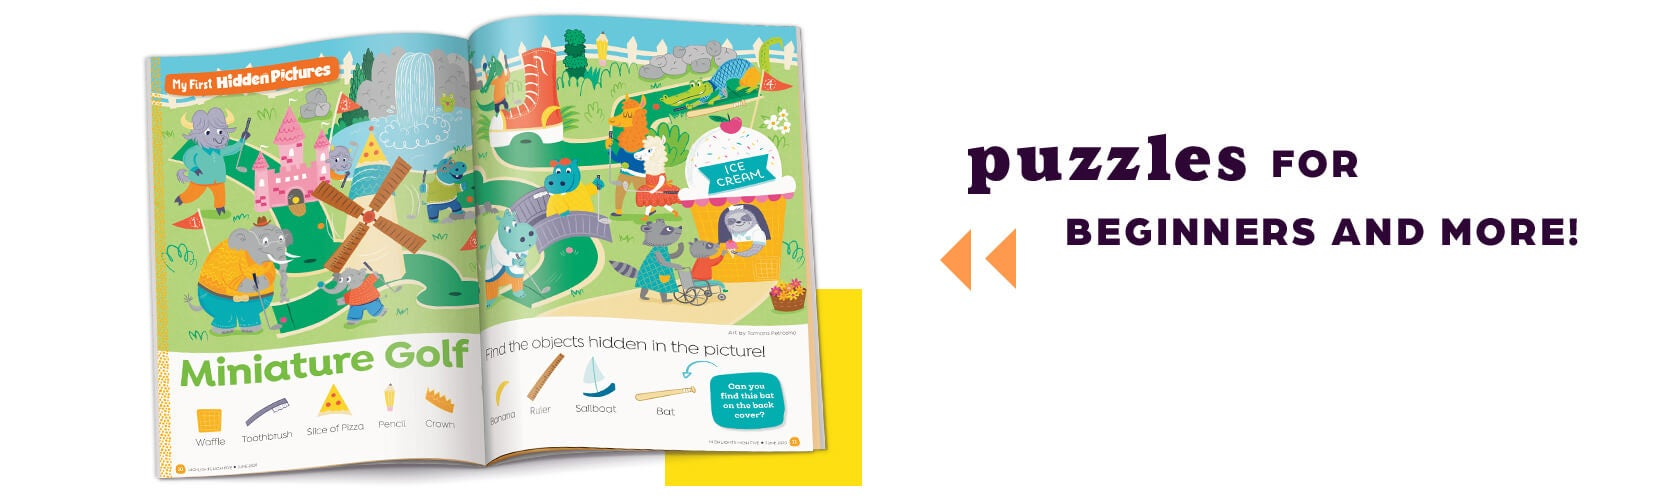 puzzles for beginners and more!